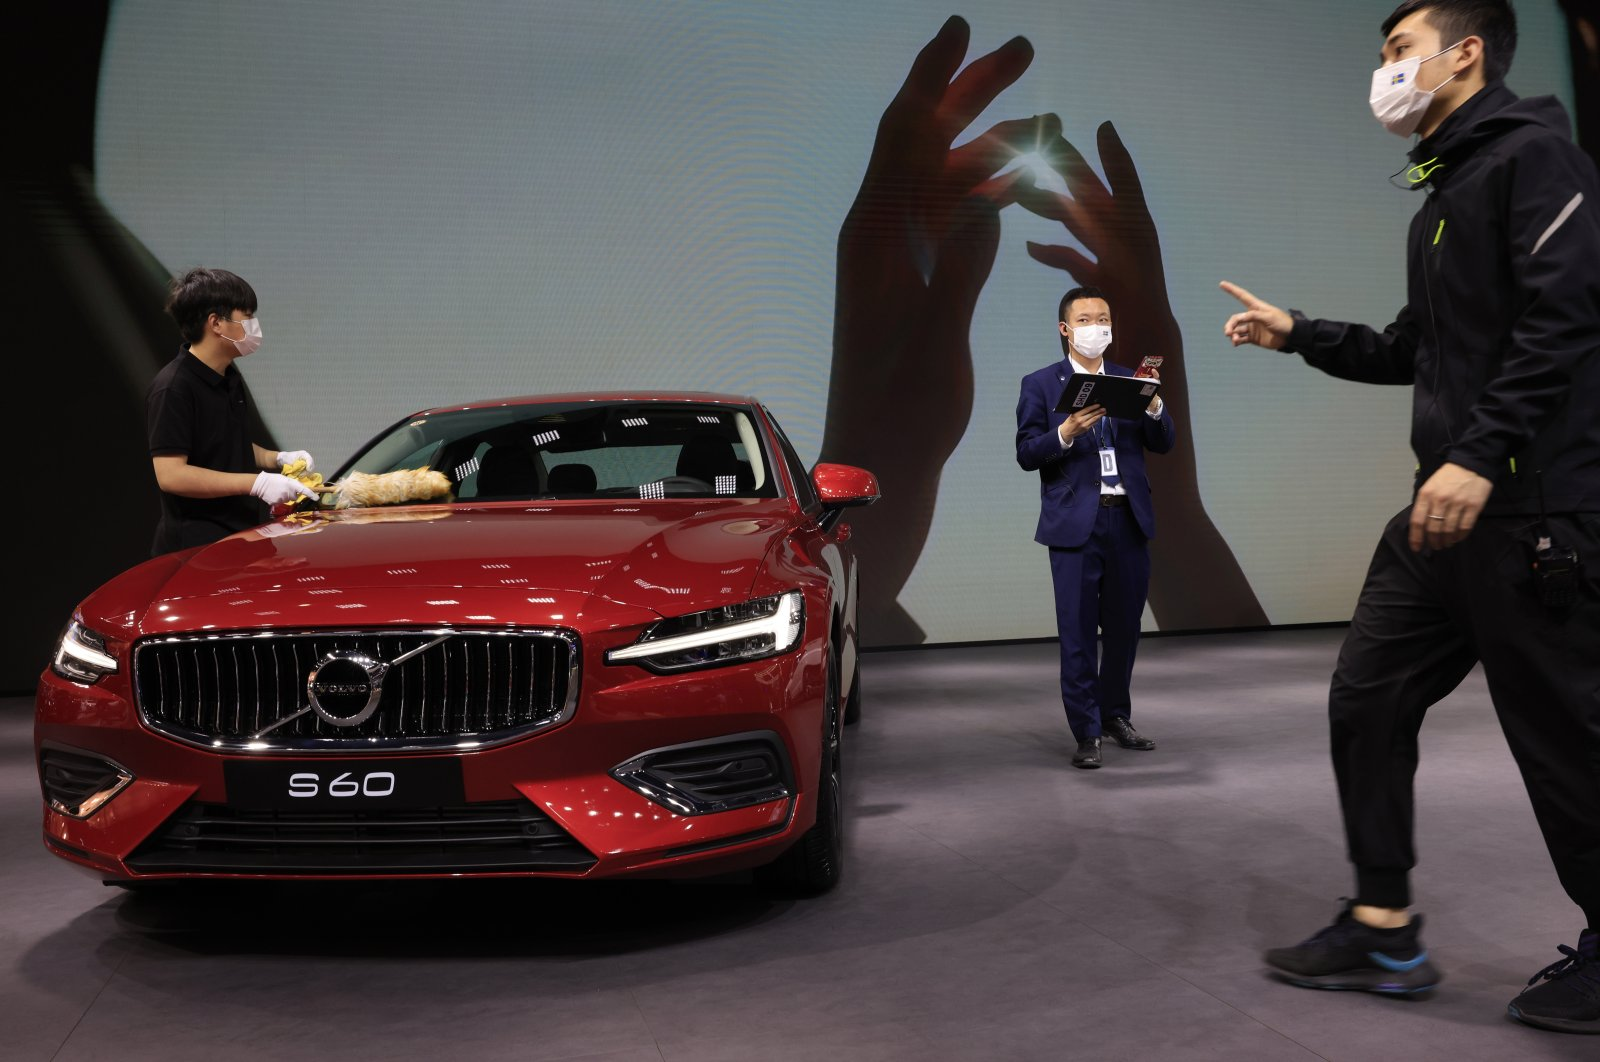 A worker cleans a Volvo S60 during the Shanghai Auto Show, Shanghai, China, Wednesday, April 21, 2021. (AP Photo)